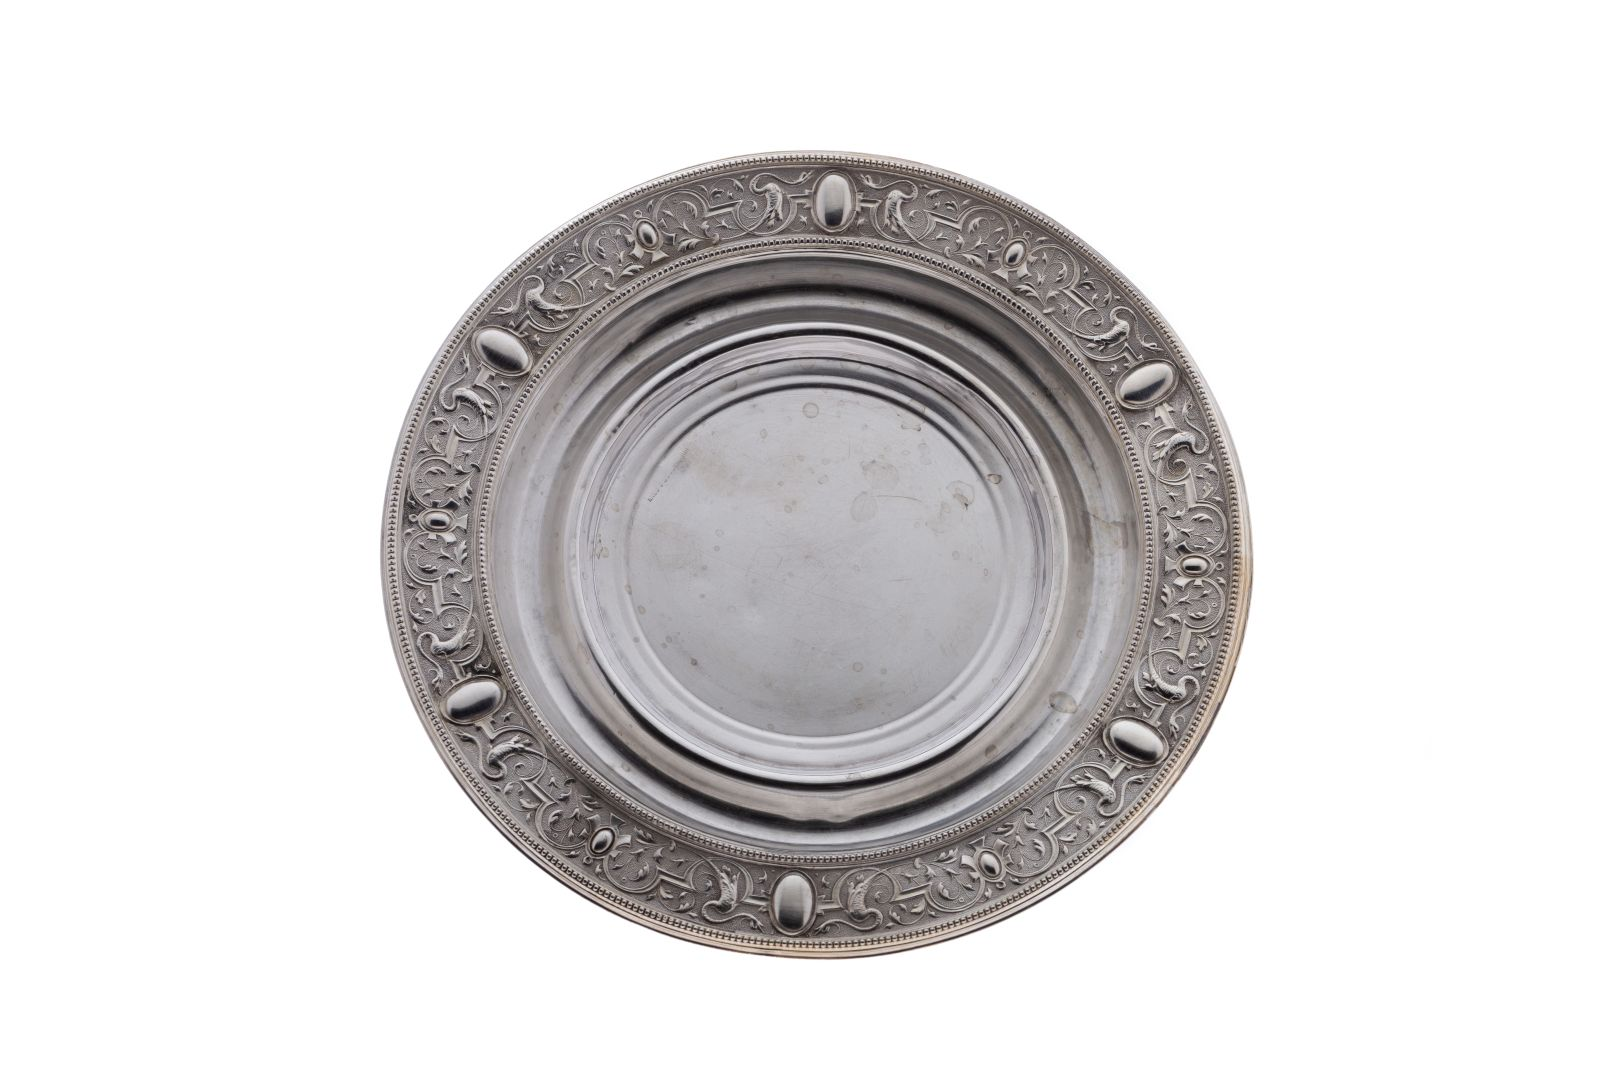 #126 A silver plate | Teller Image